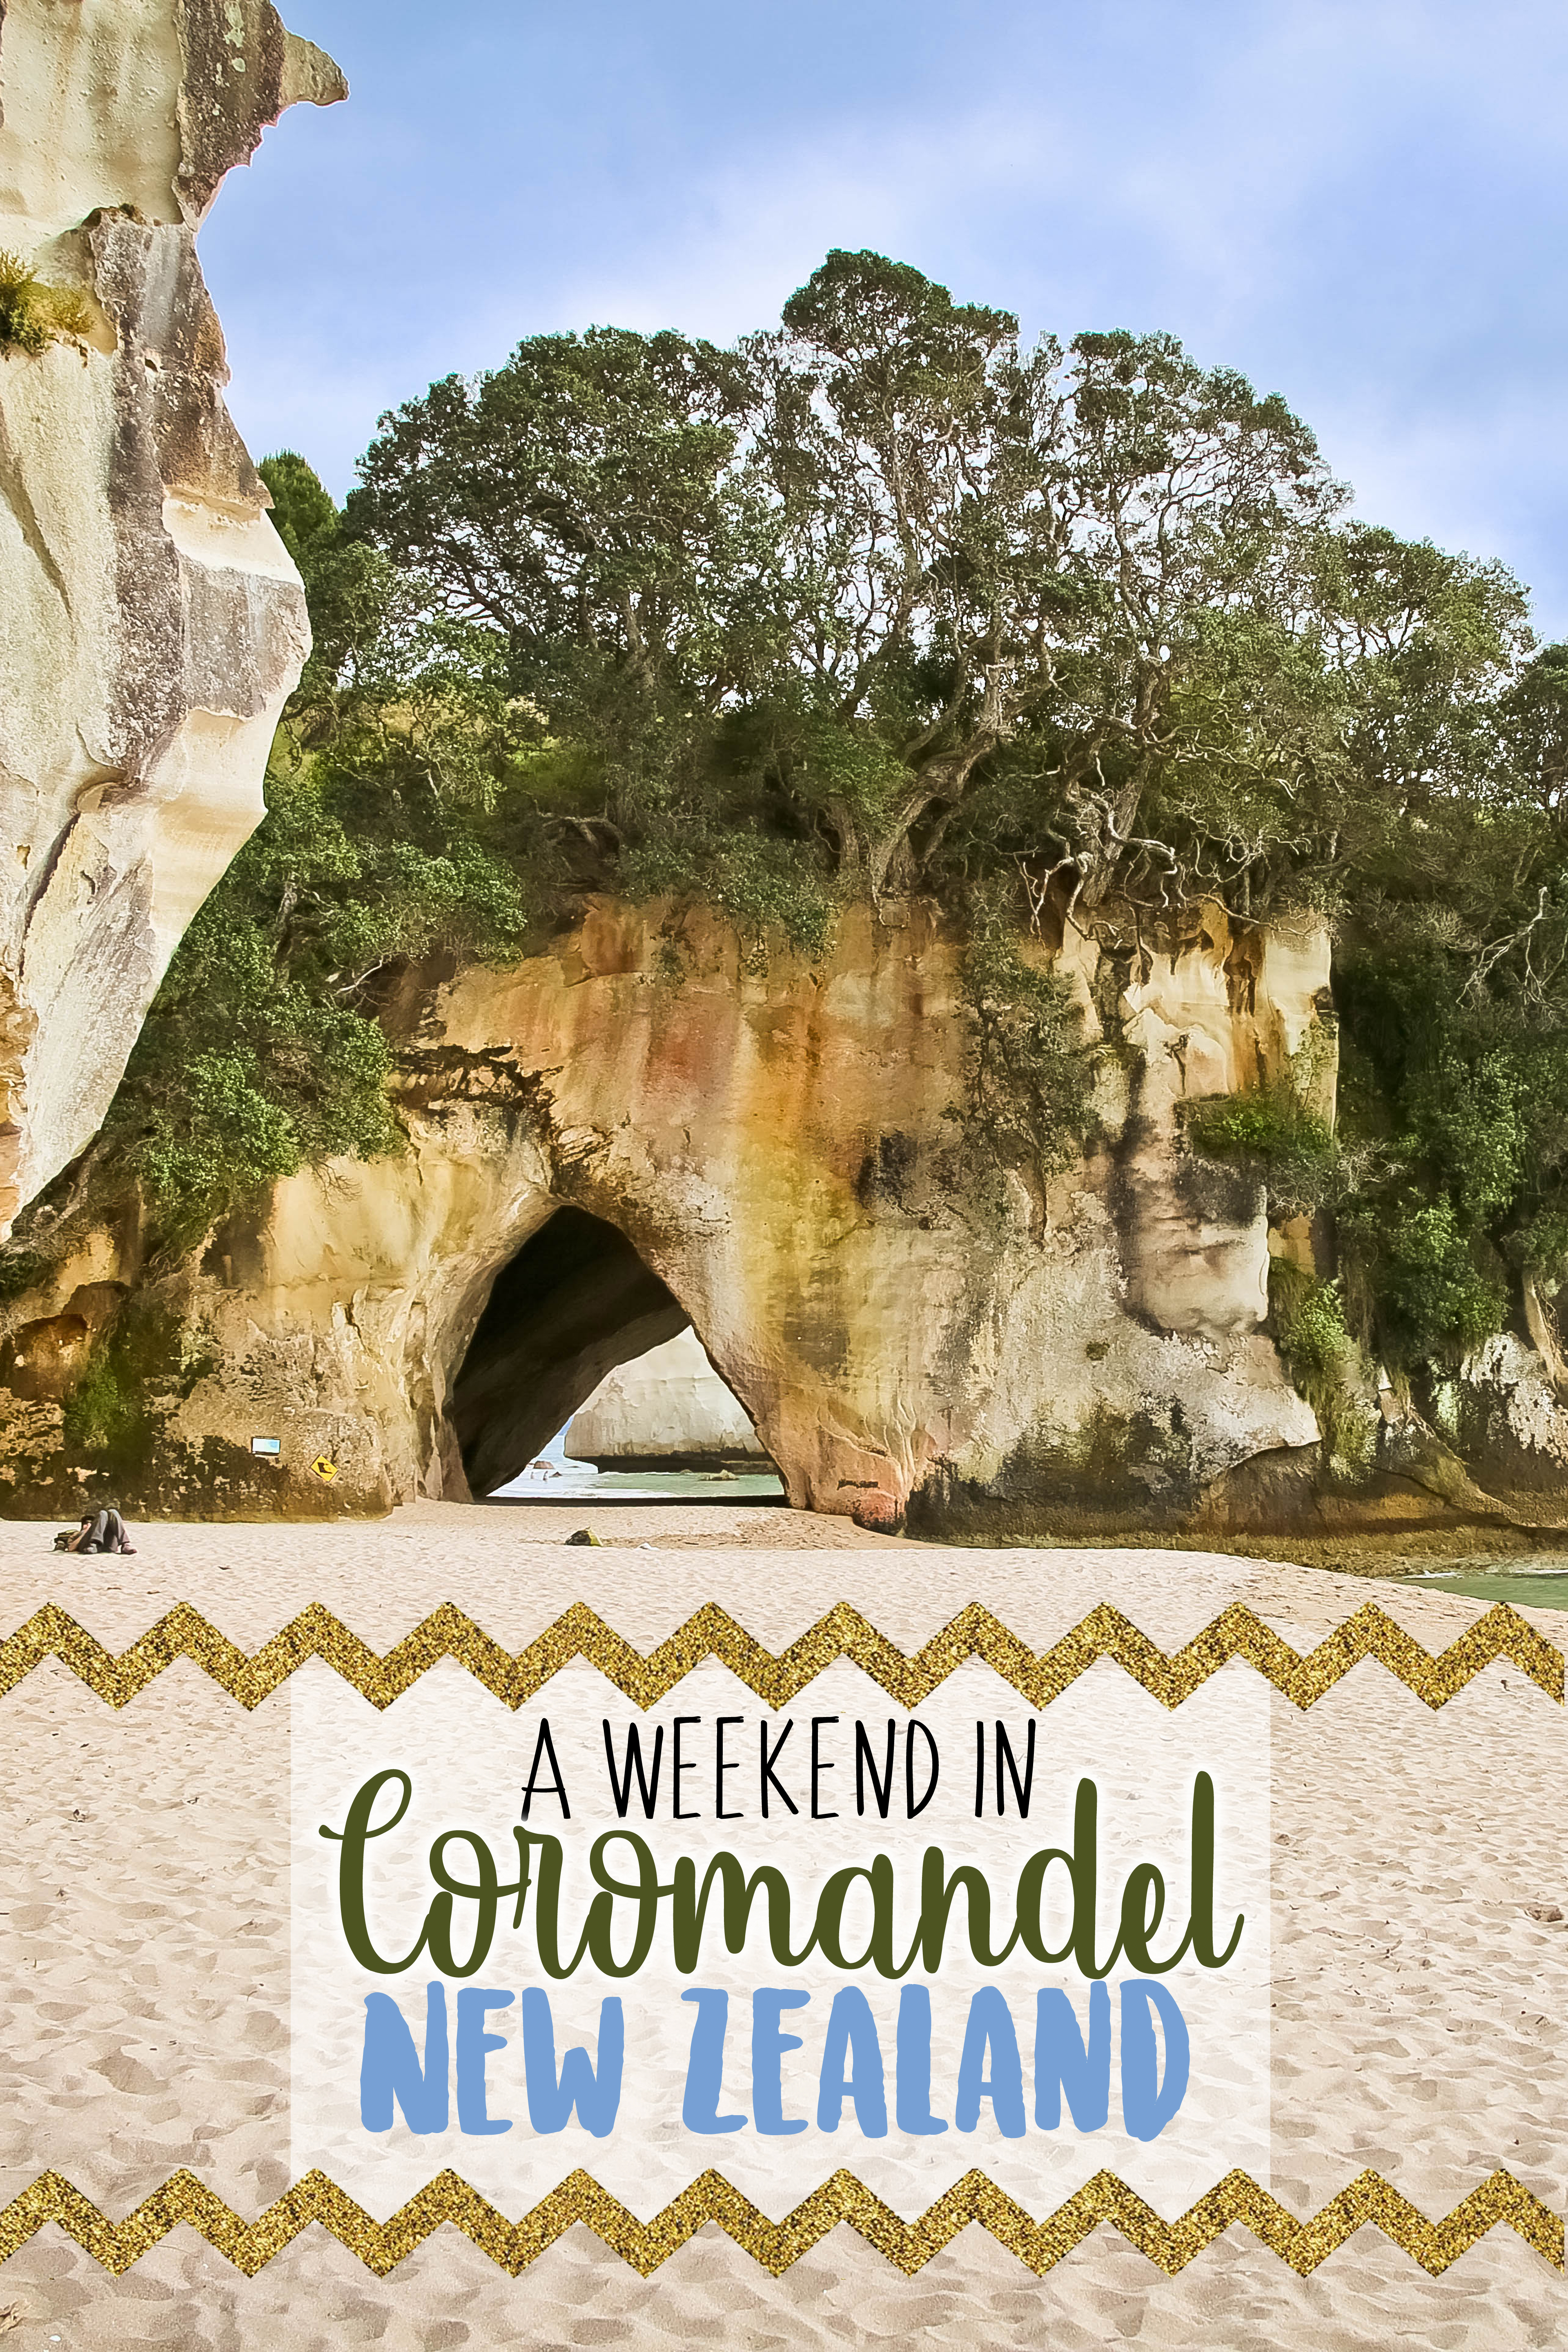 A Weekend in Coromandel, New Zealand